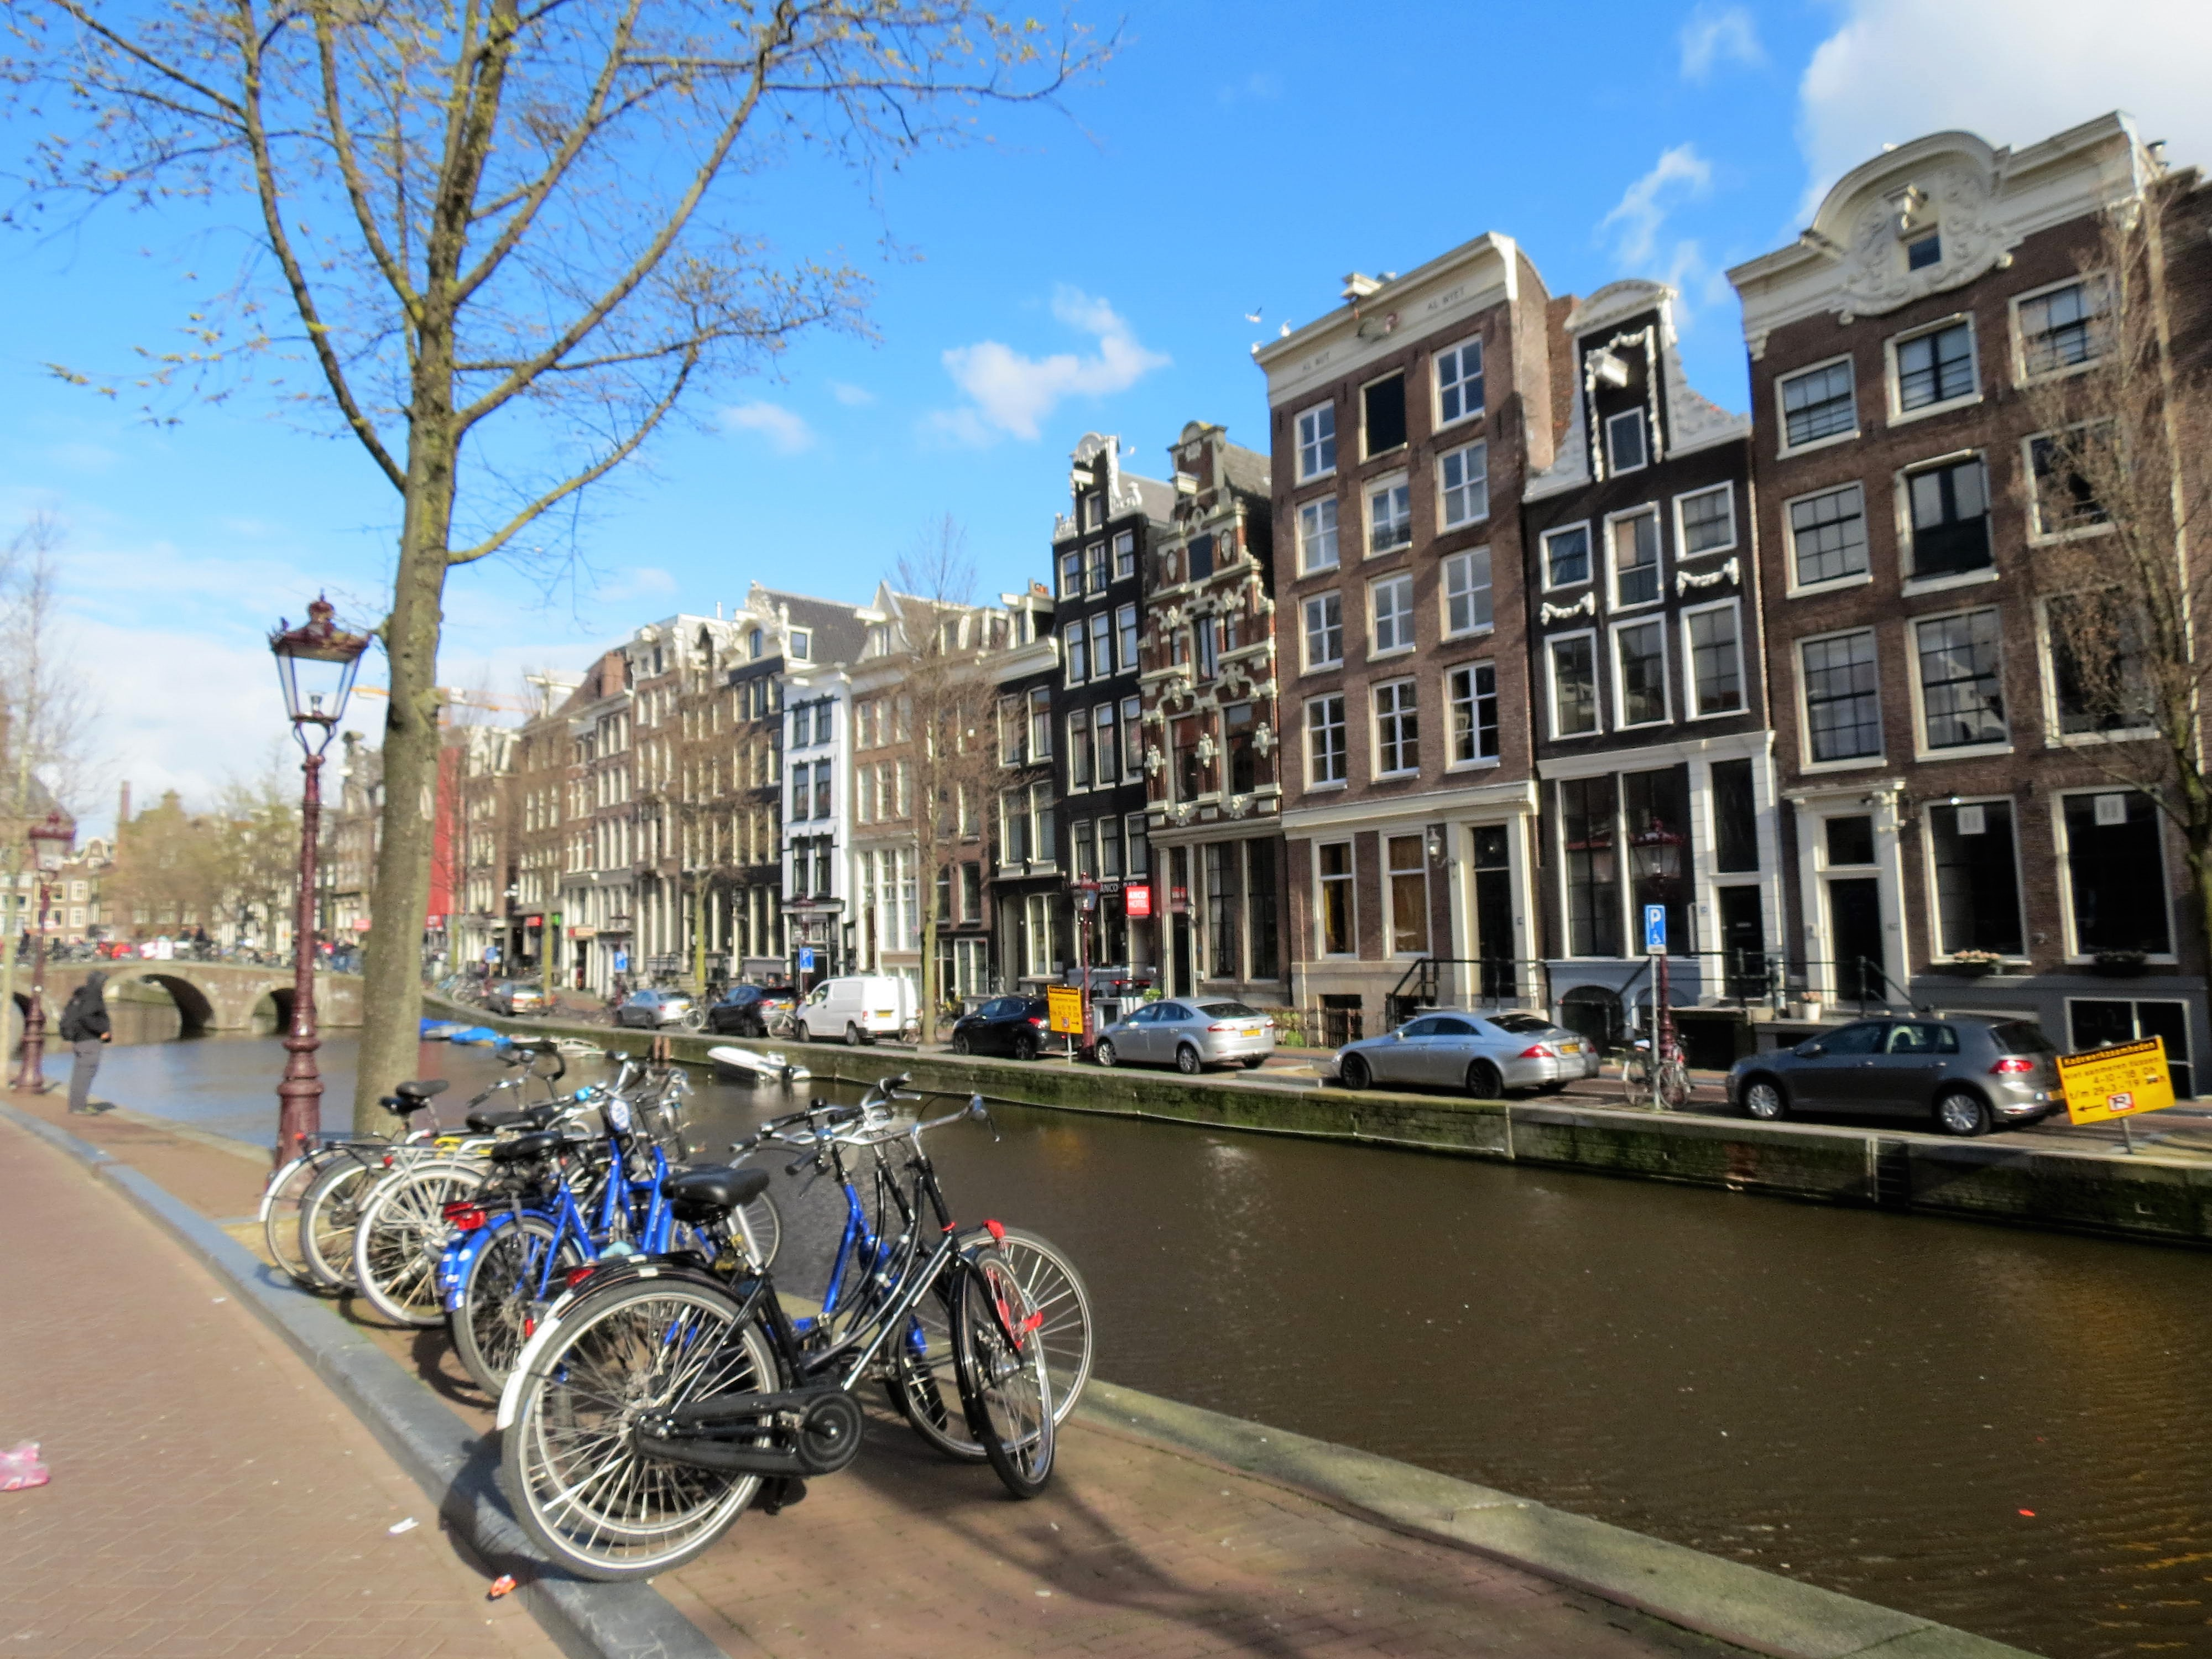 Things to do in Amsterdam